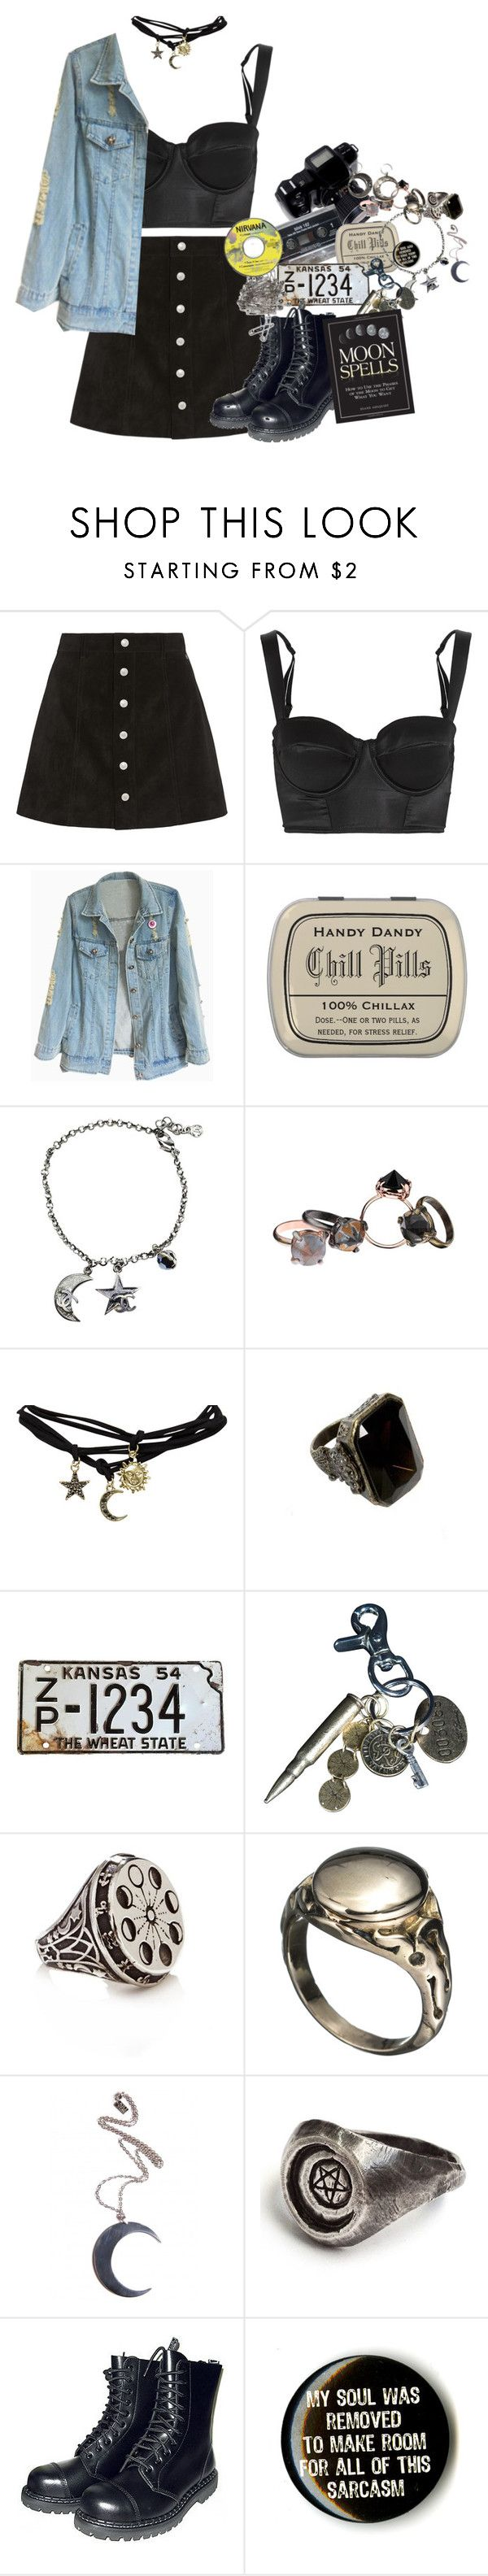 """""""i dunno number 569"""" by monsterorcoffee ❤ liked on Polyvore featuring AG Adriano Goldschmied, I.D. SARRIERI, Chanel, Made Her Think, Wet Seal, AllSaints, MANIAMANIA, Alexis Bittar, Disturbia and T.U.K."""